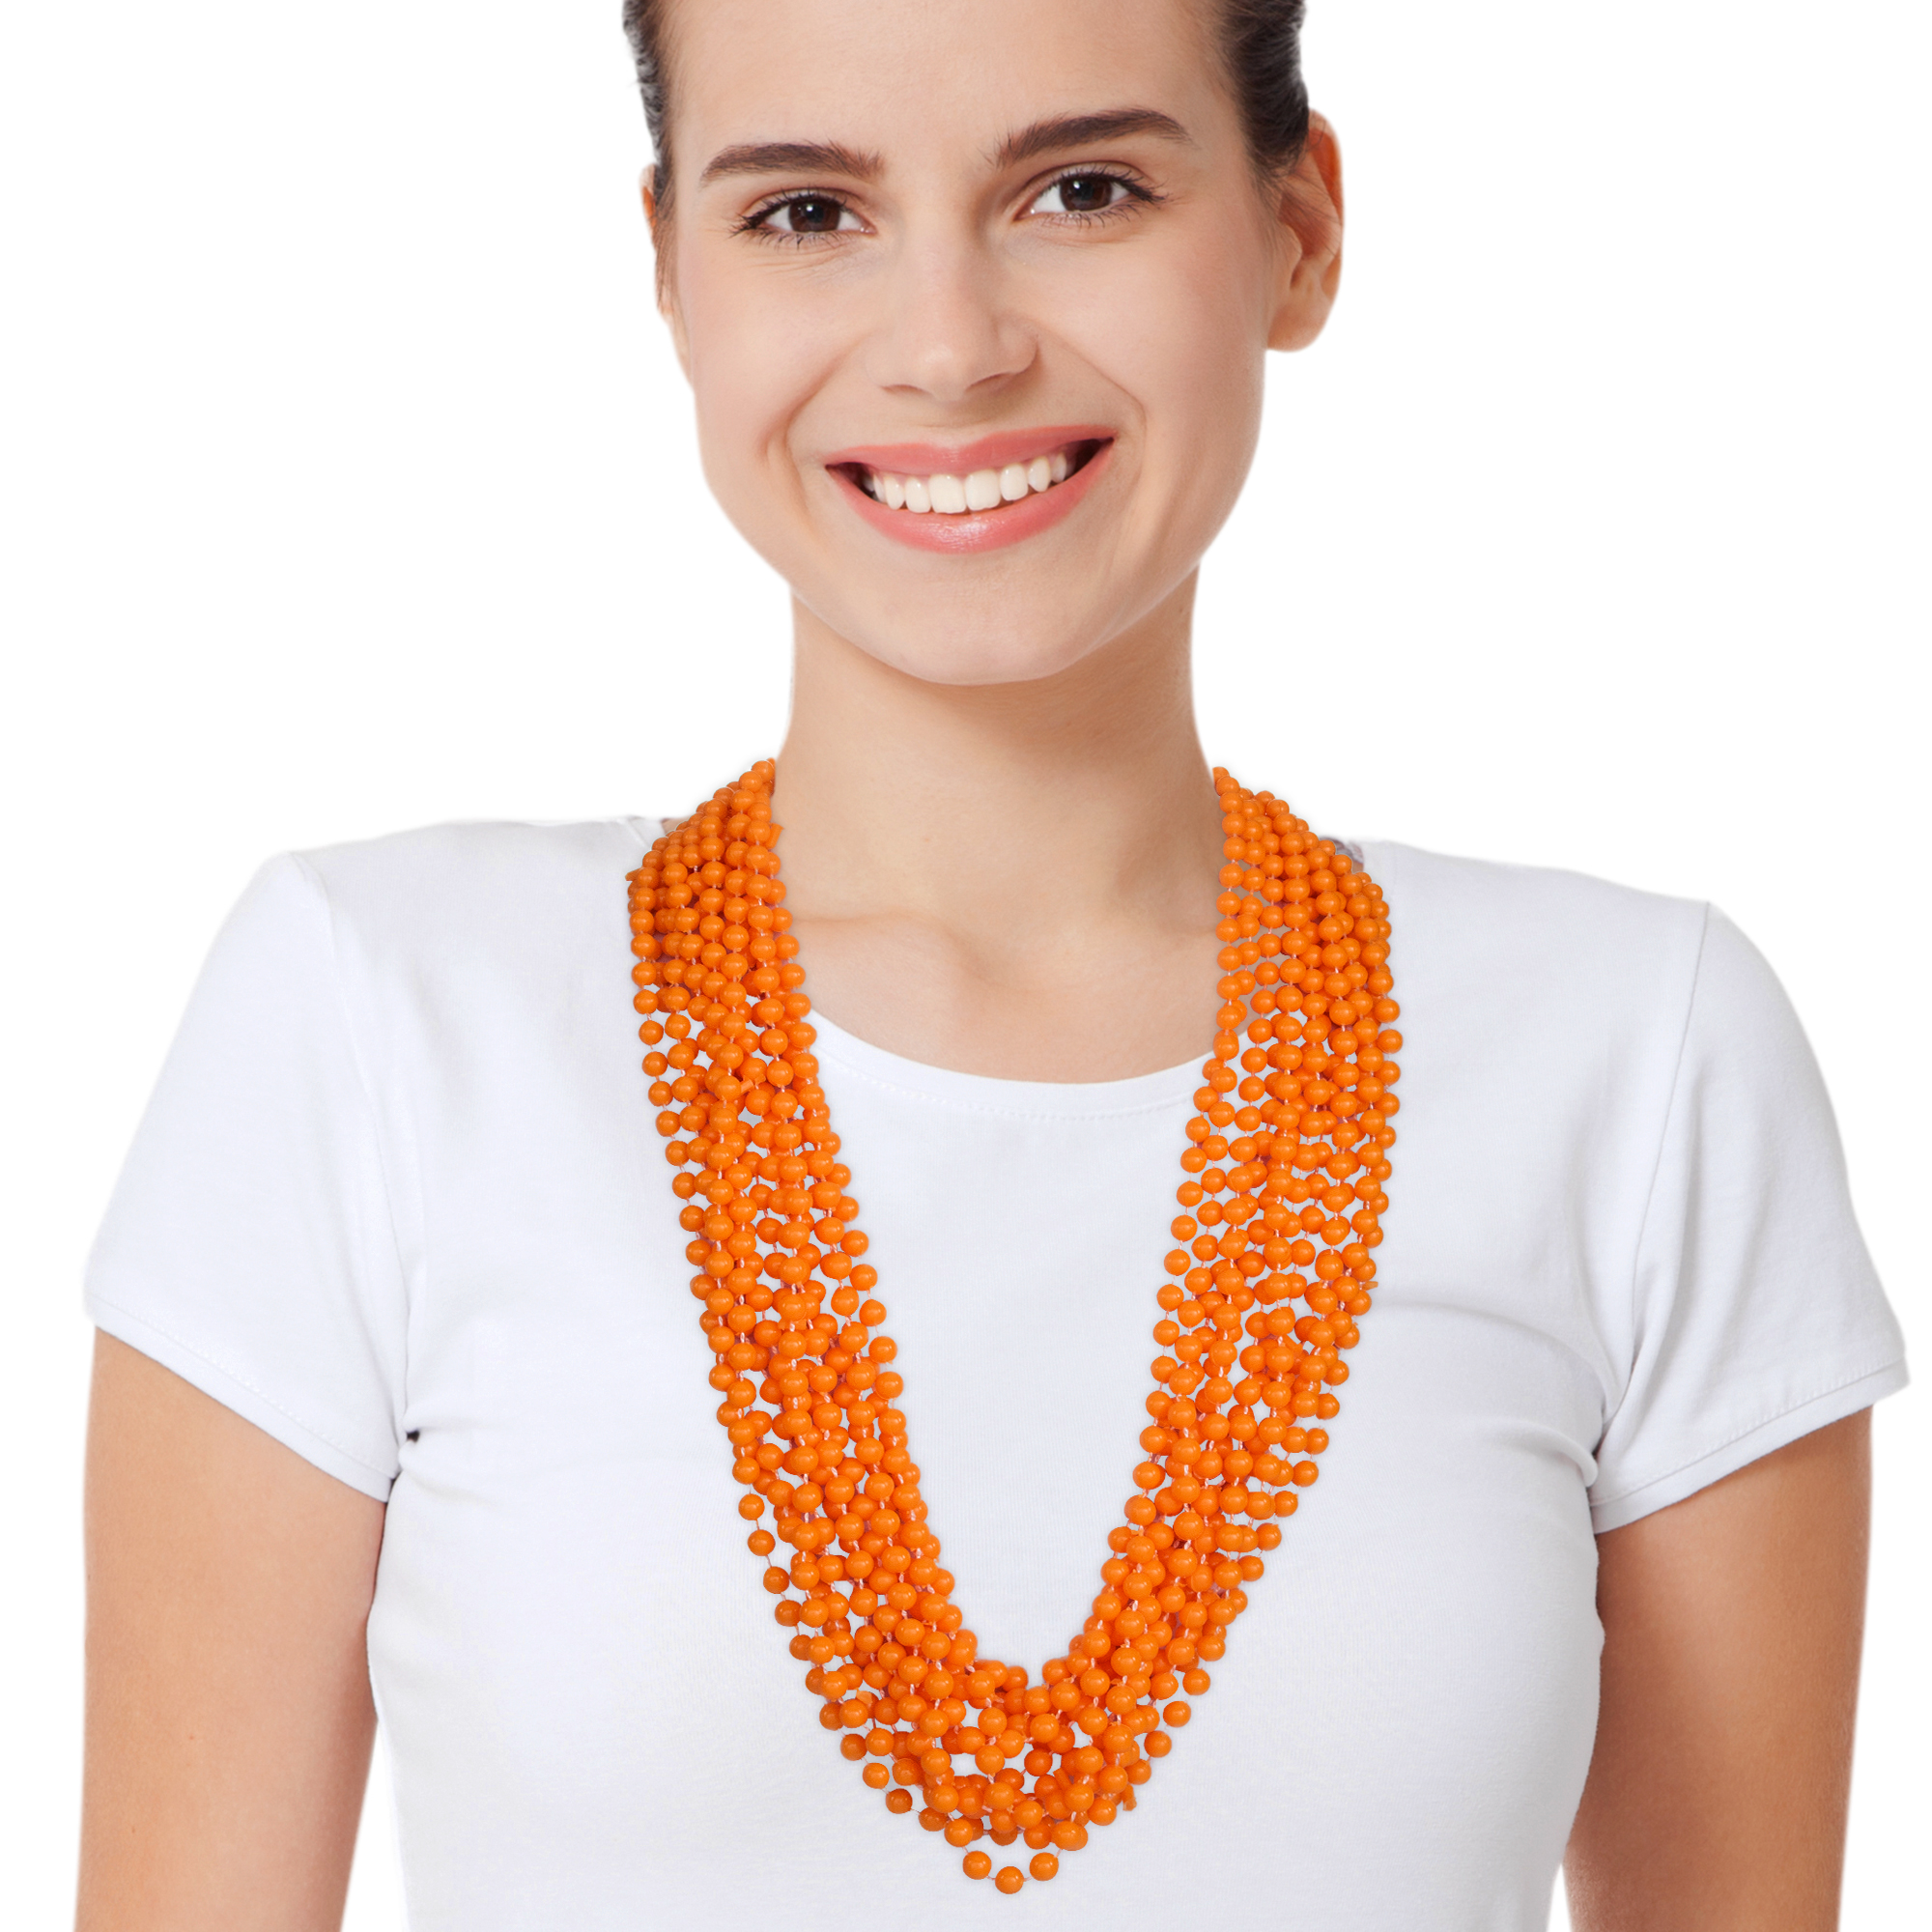 33 INCH ORANGE BEAD NECKLACES